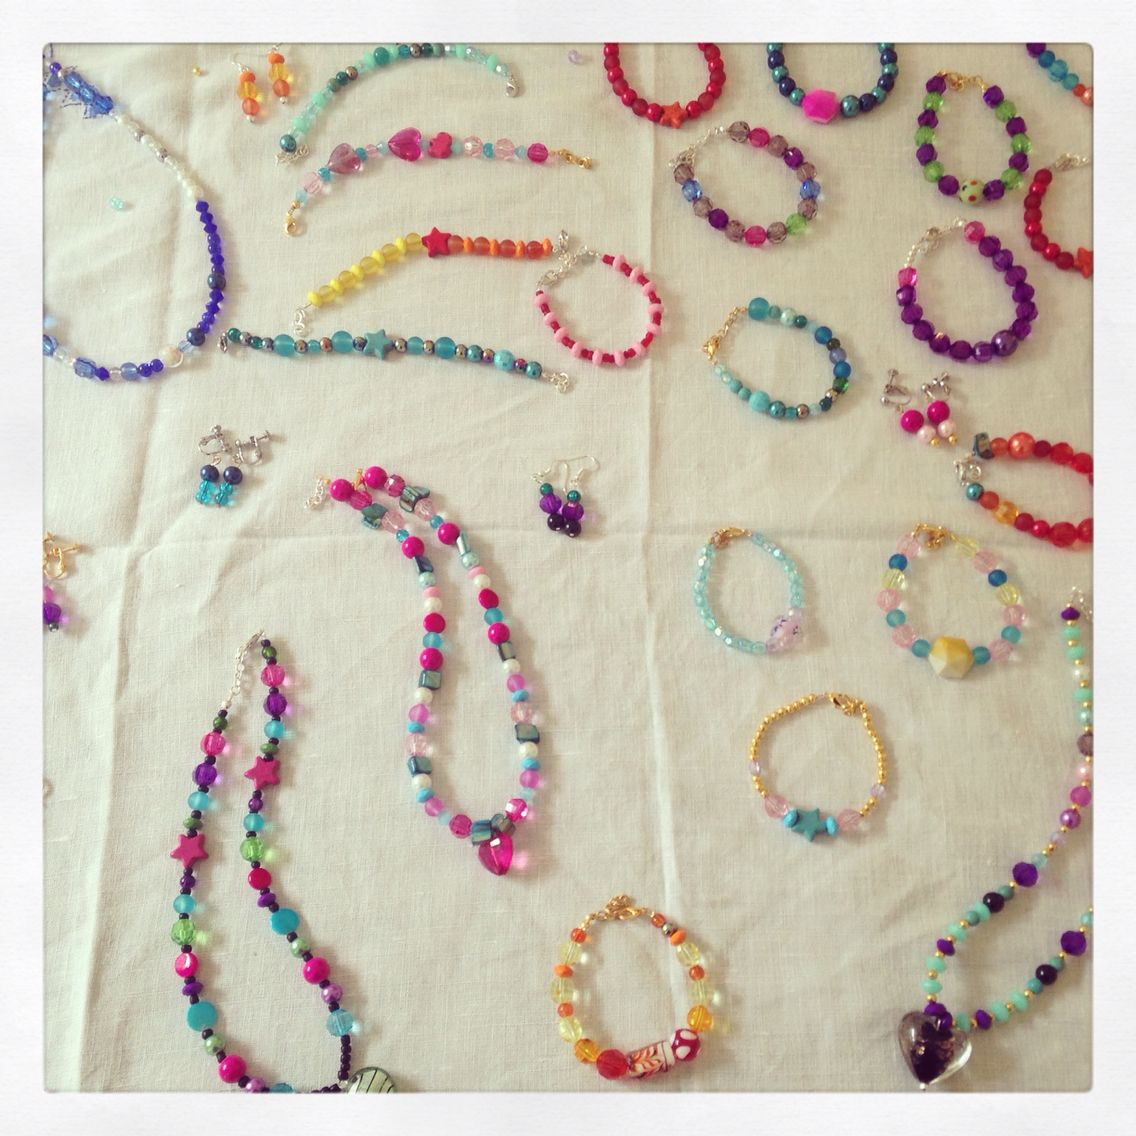 Hand made jewellery from Ella's 8th birthday party! Awesome job girls!